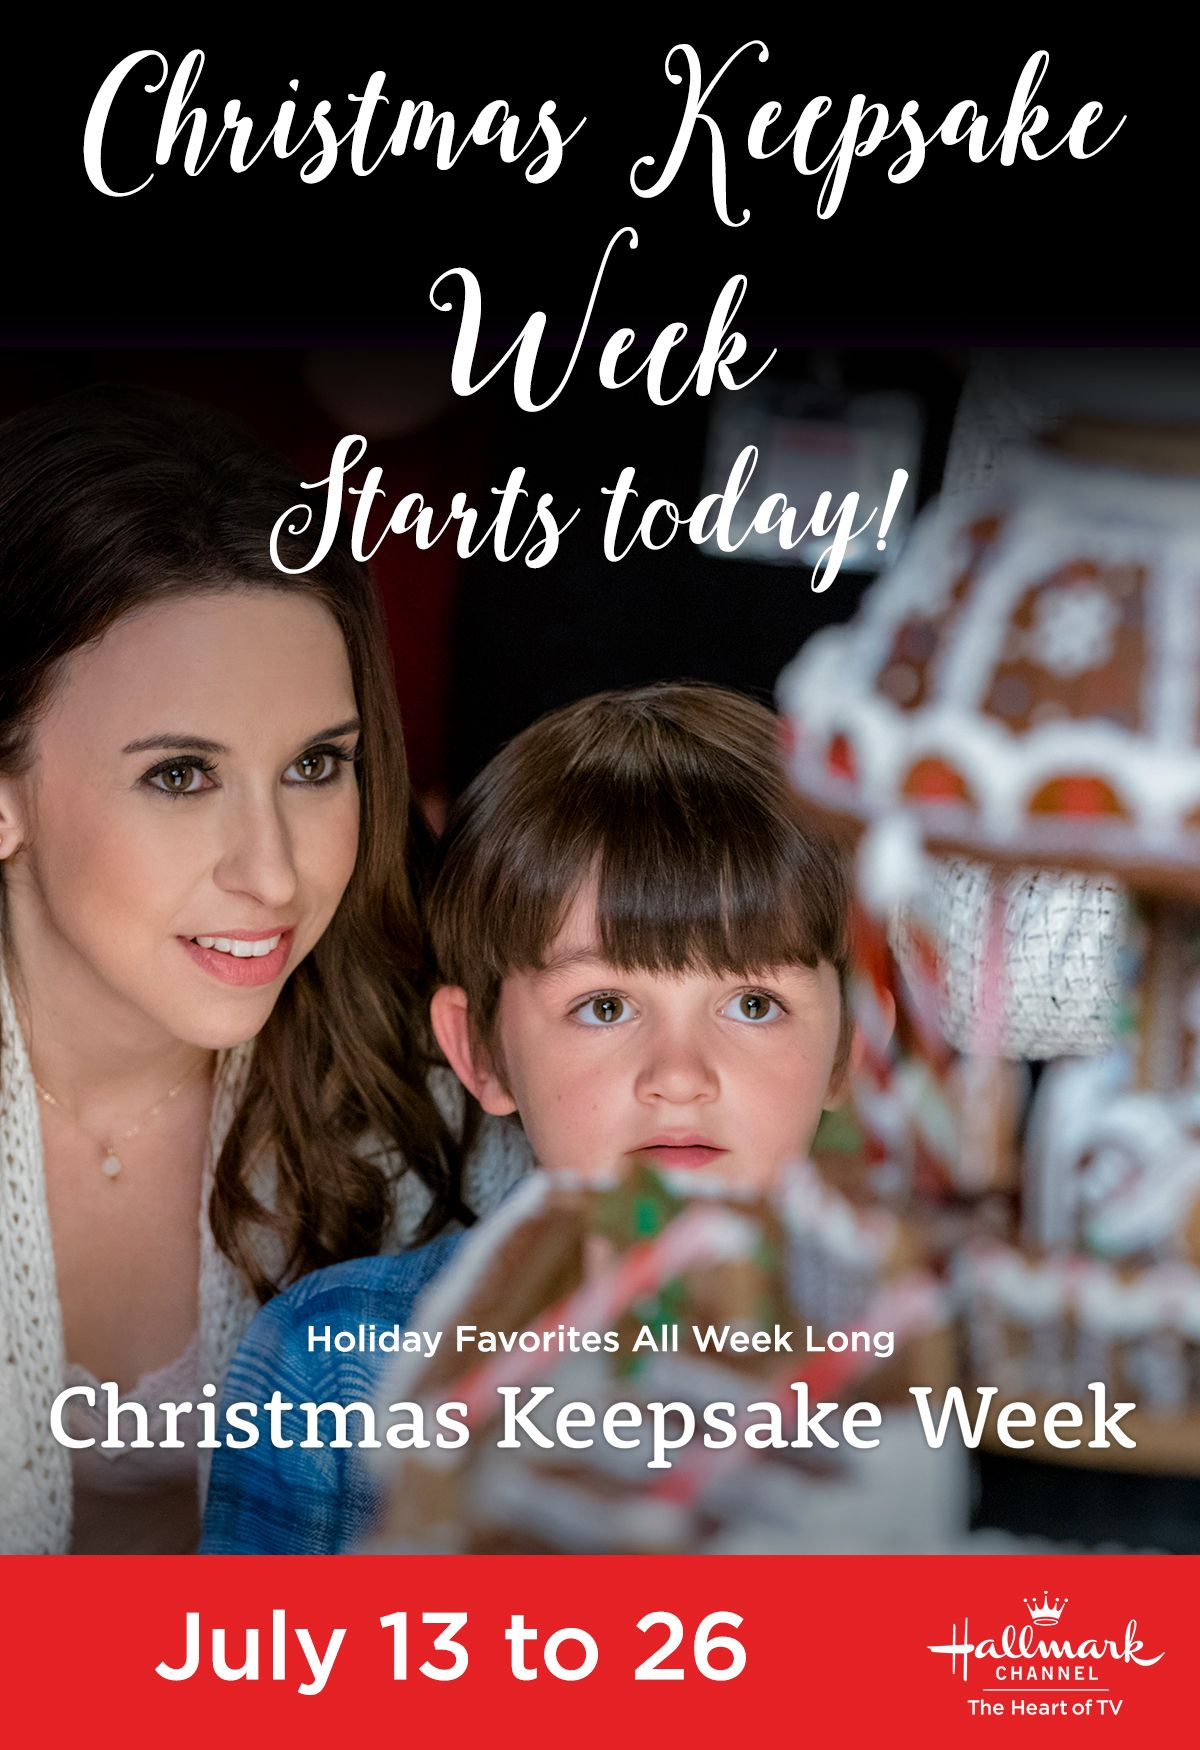 Today's the day! Christmas Keepsake Week kicks off with